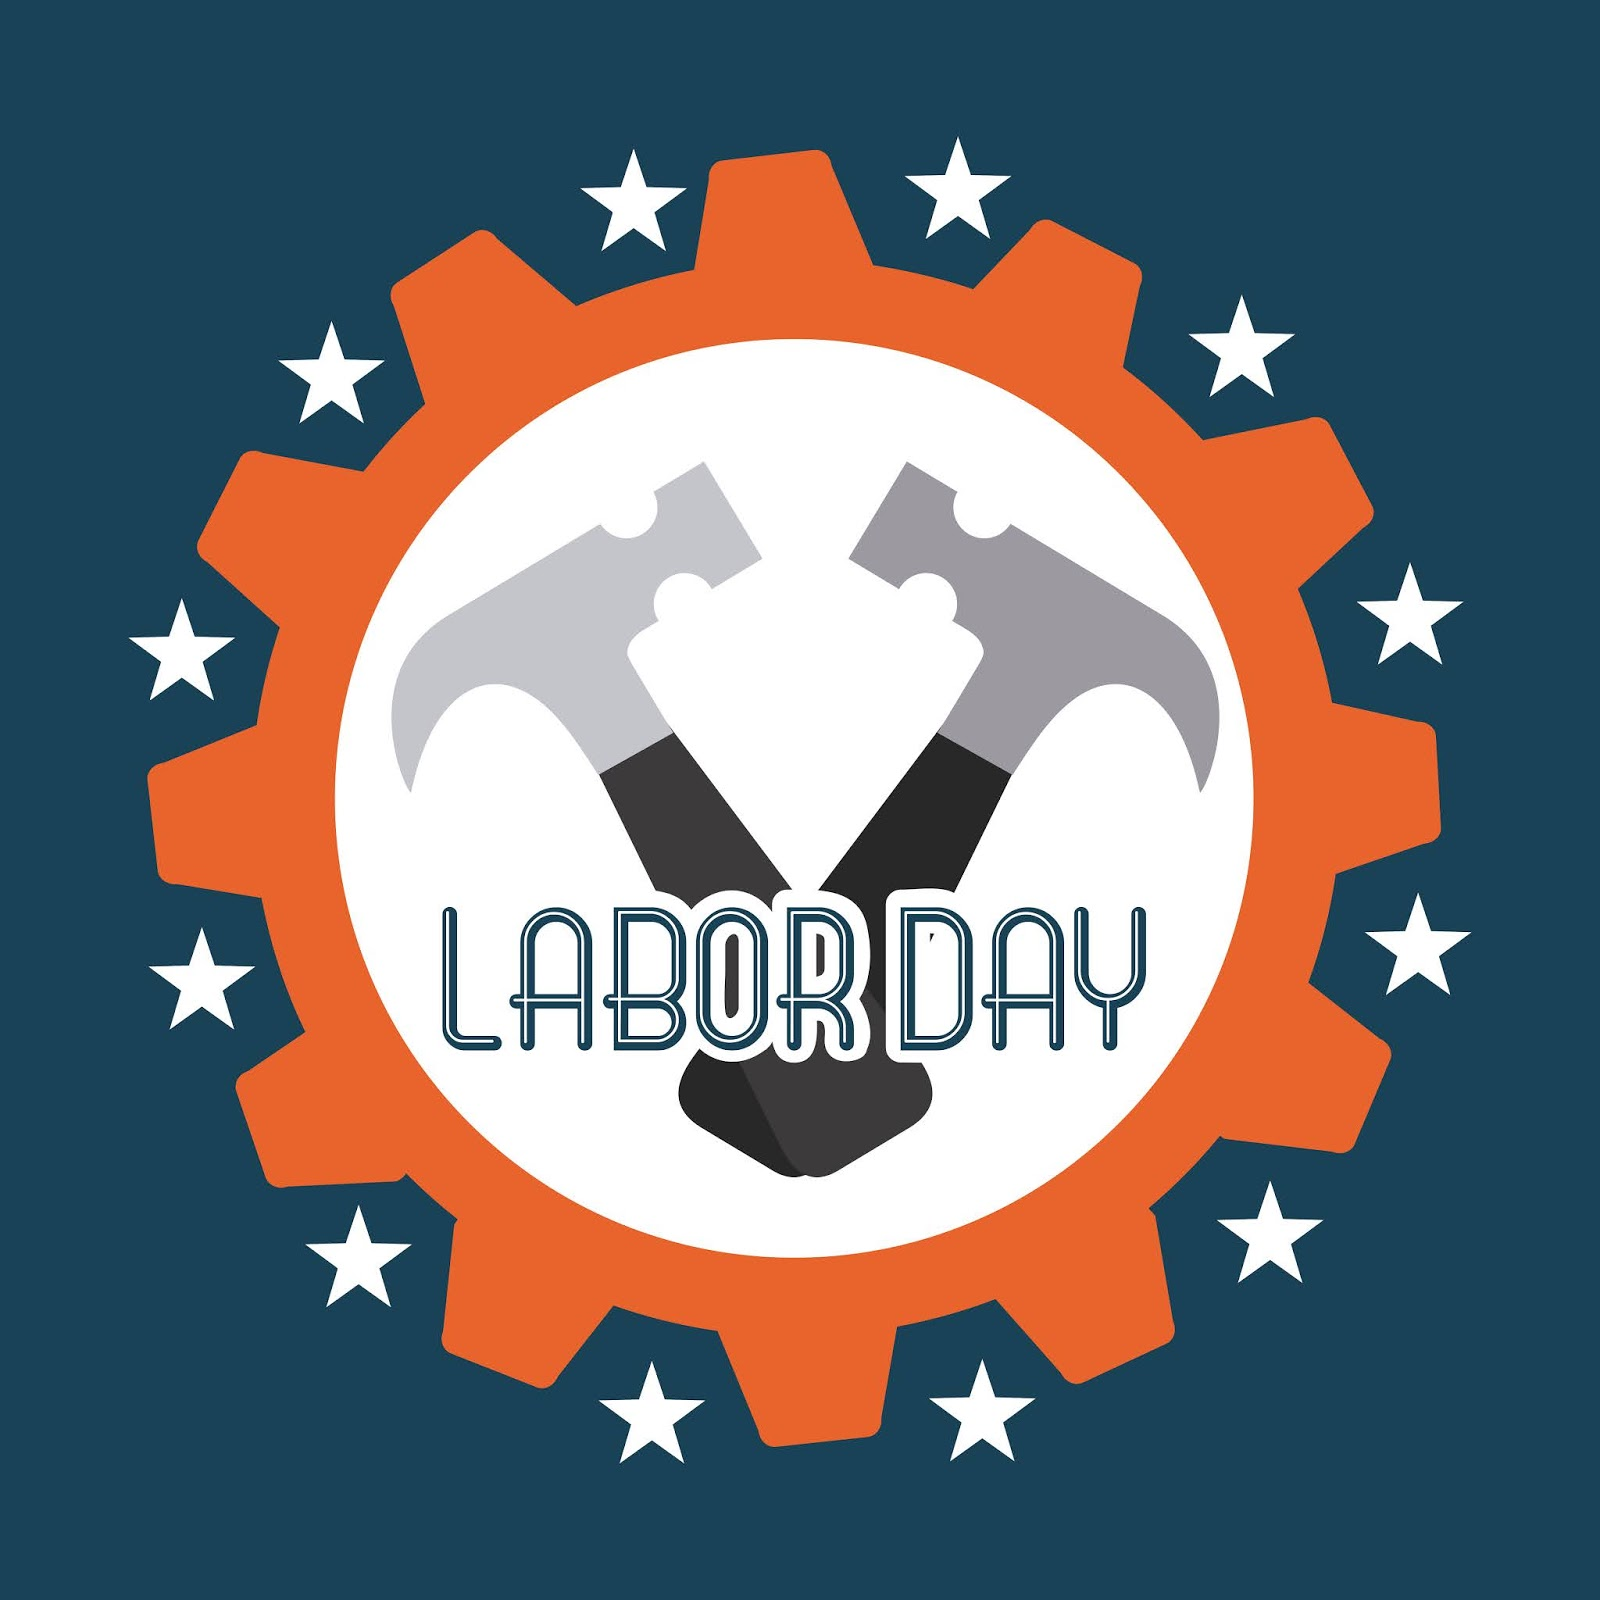 Labor Day Design Blue Background Vector Illustration	 Free Download Vector CDR, AI, EPS and PNG Formats